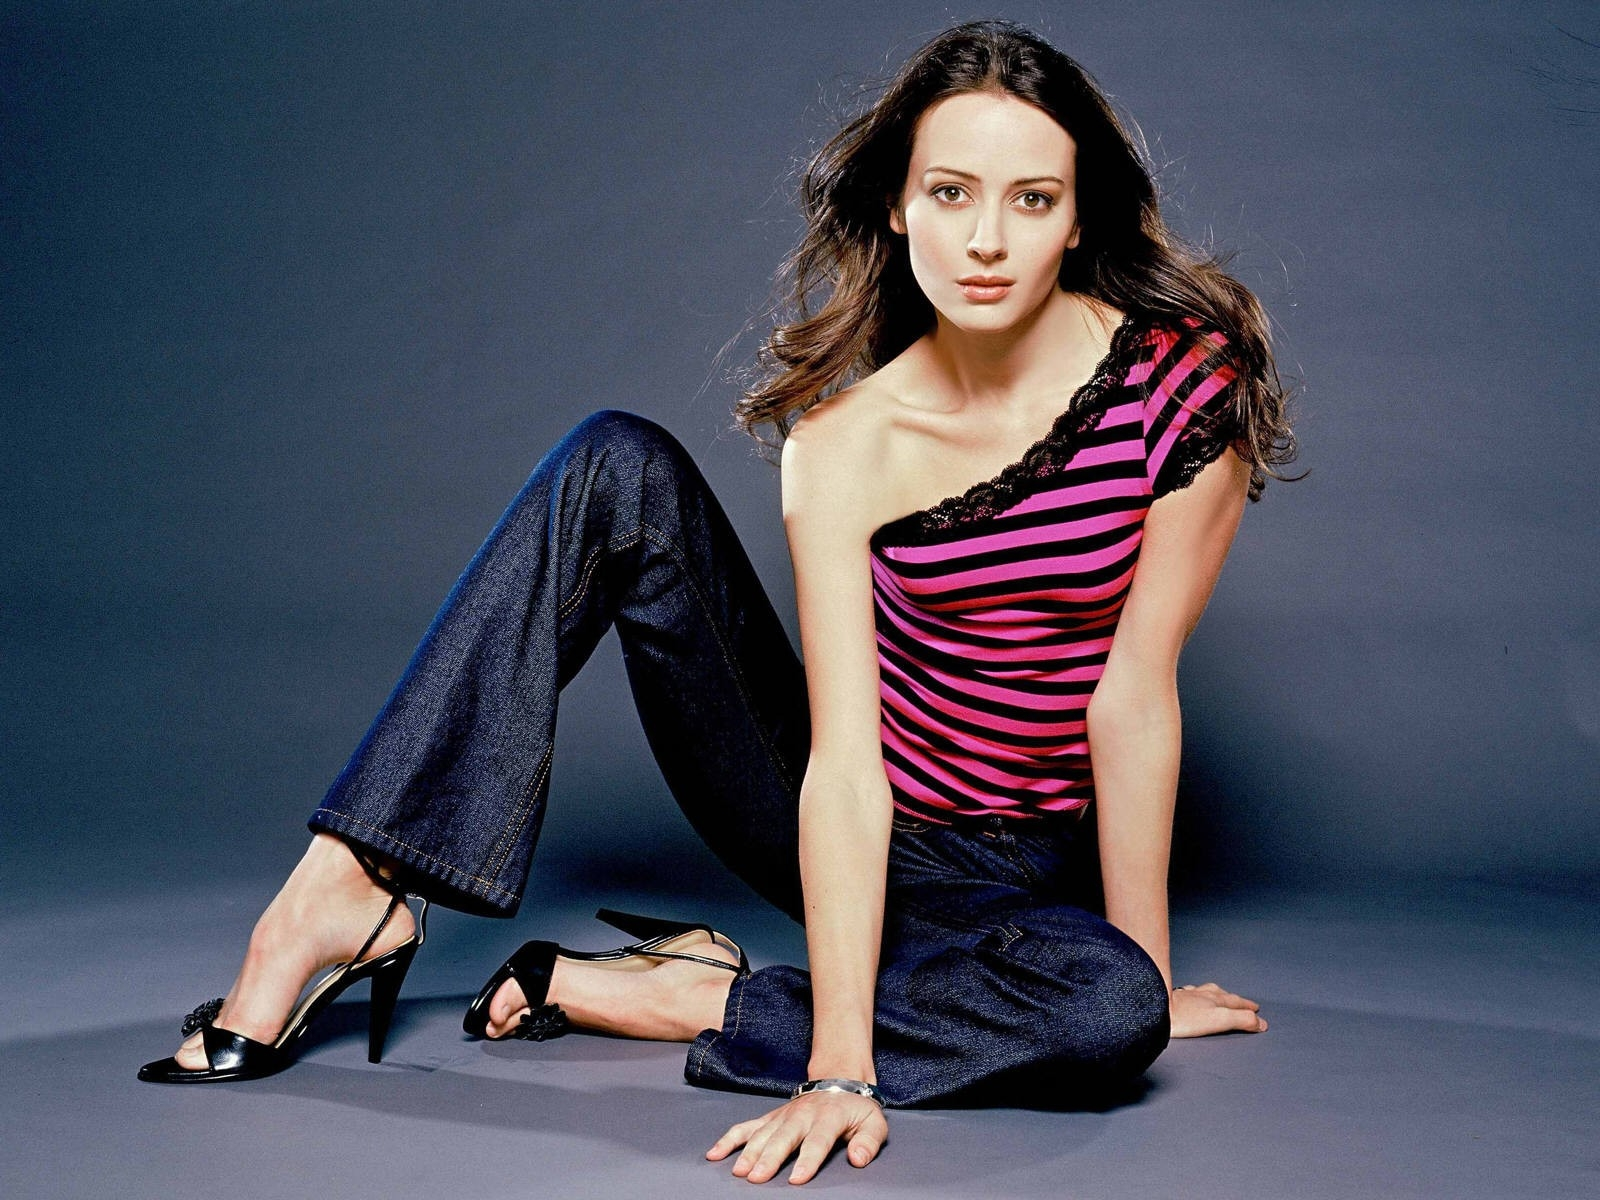 Amy Acker Amy Acker Happy Town Much Ado About Nothing DVDbash